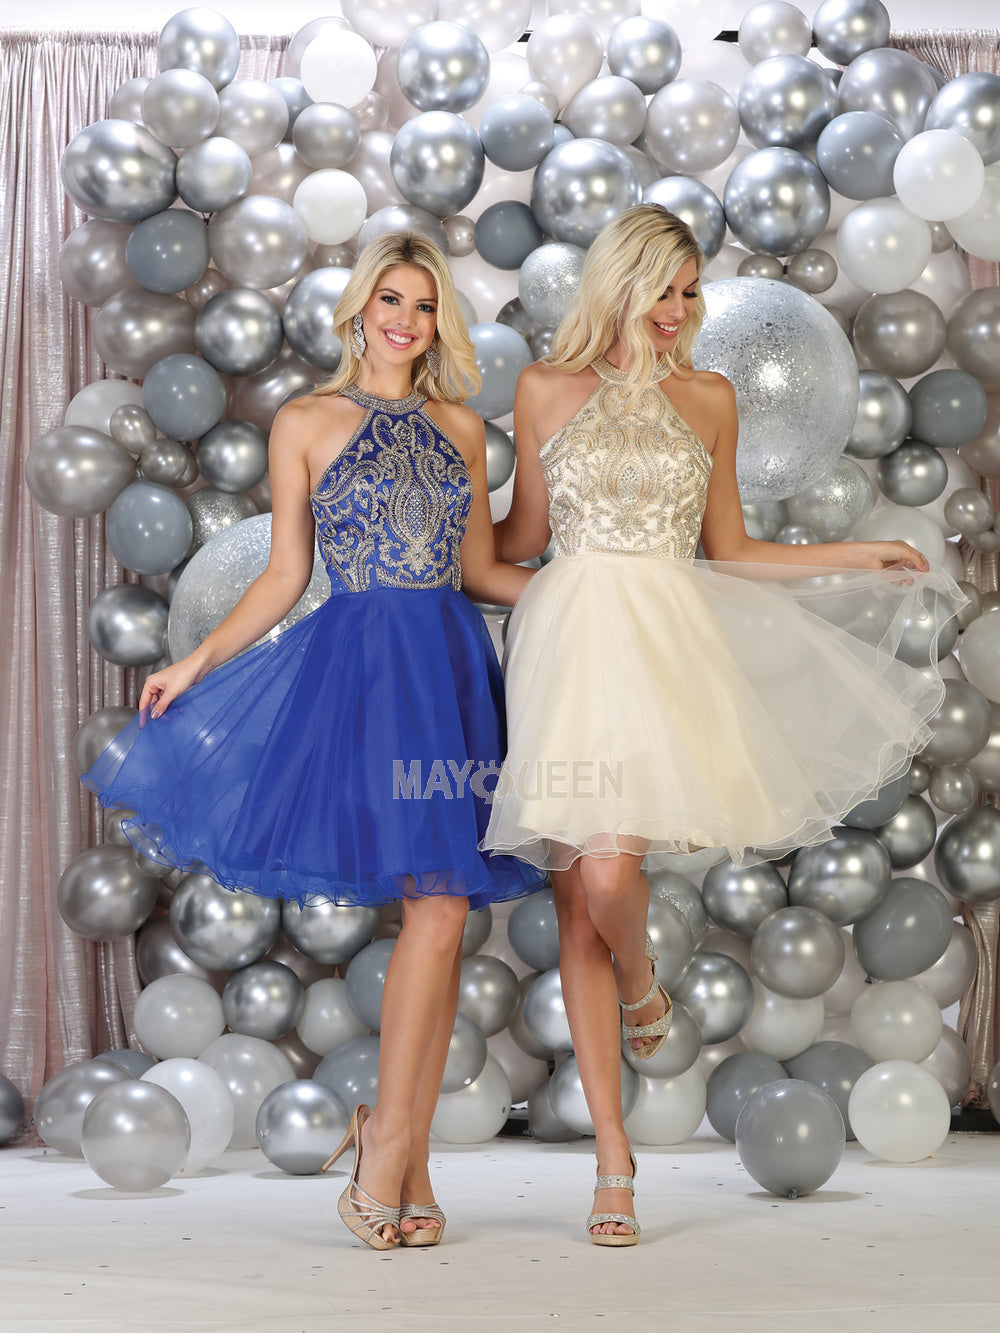 Mayqueen Size Chart E MQ 1657 - A-Line Halter Embroidered Short Tulle Skirt Homecoming Dress - Diggz Prom